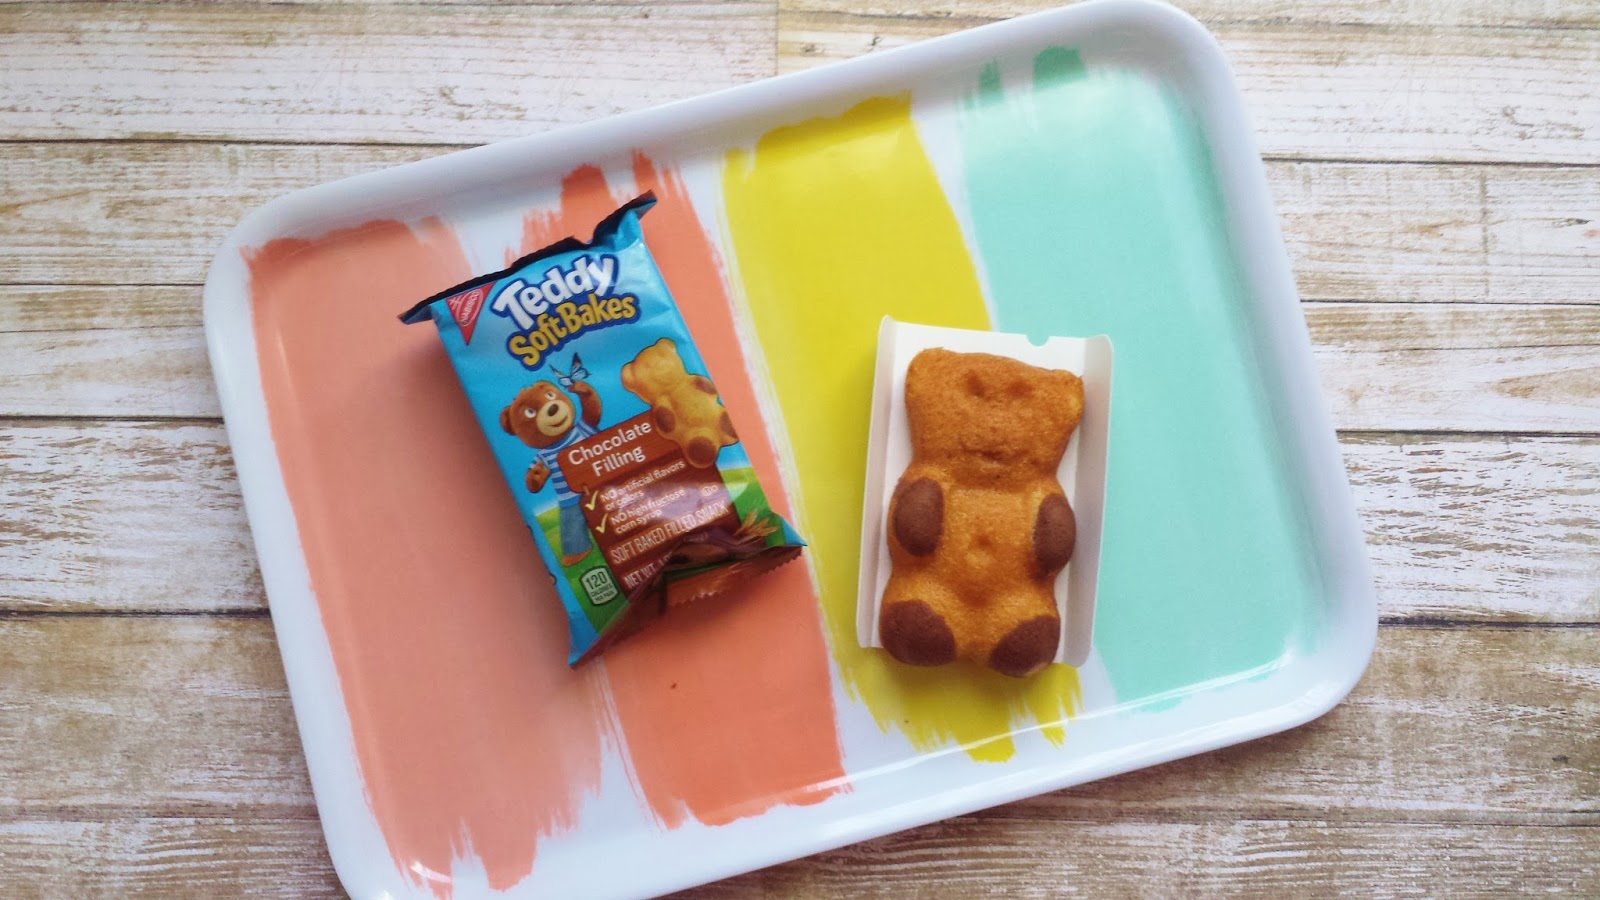 TEDDY SOFT BAKED filled snacks, healthy kid snacks, #DiscoverTeddy #2Good2Bear #shop #cbias